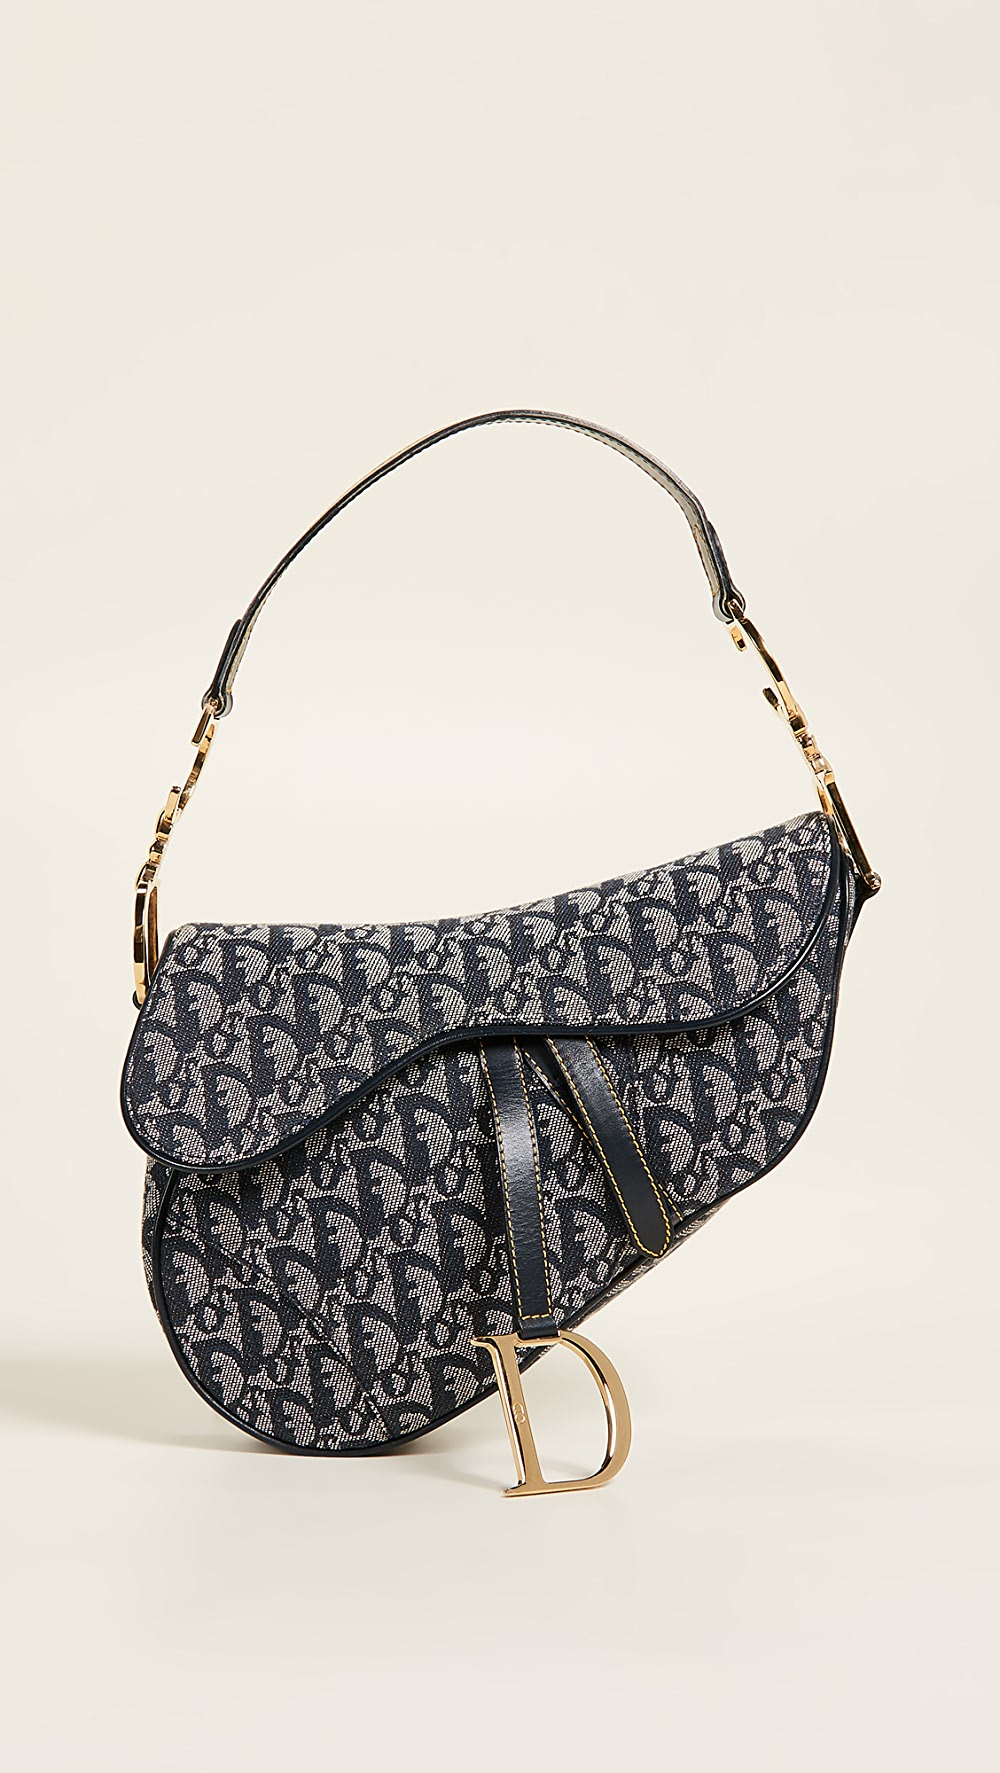 Audacious What Goes Around Comes Around - Dior Canvas Saddle Bag Refreshing And Beneficial To The Eyes